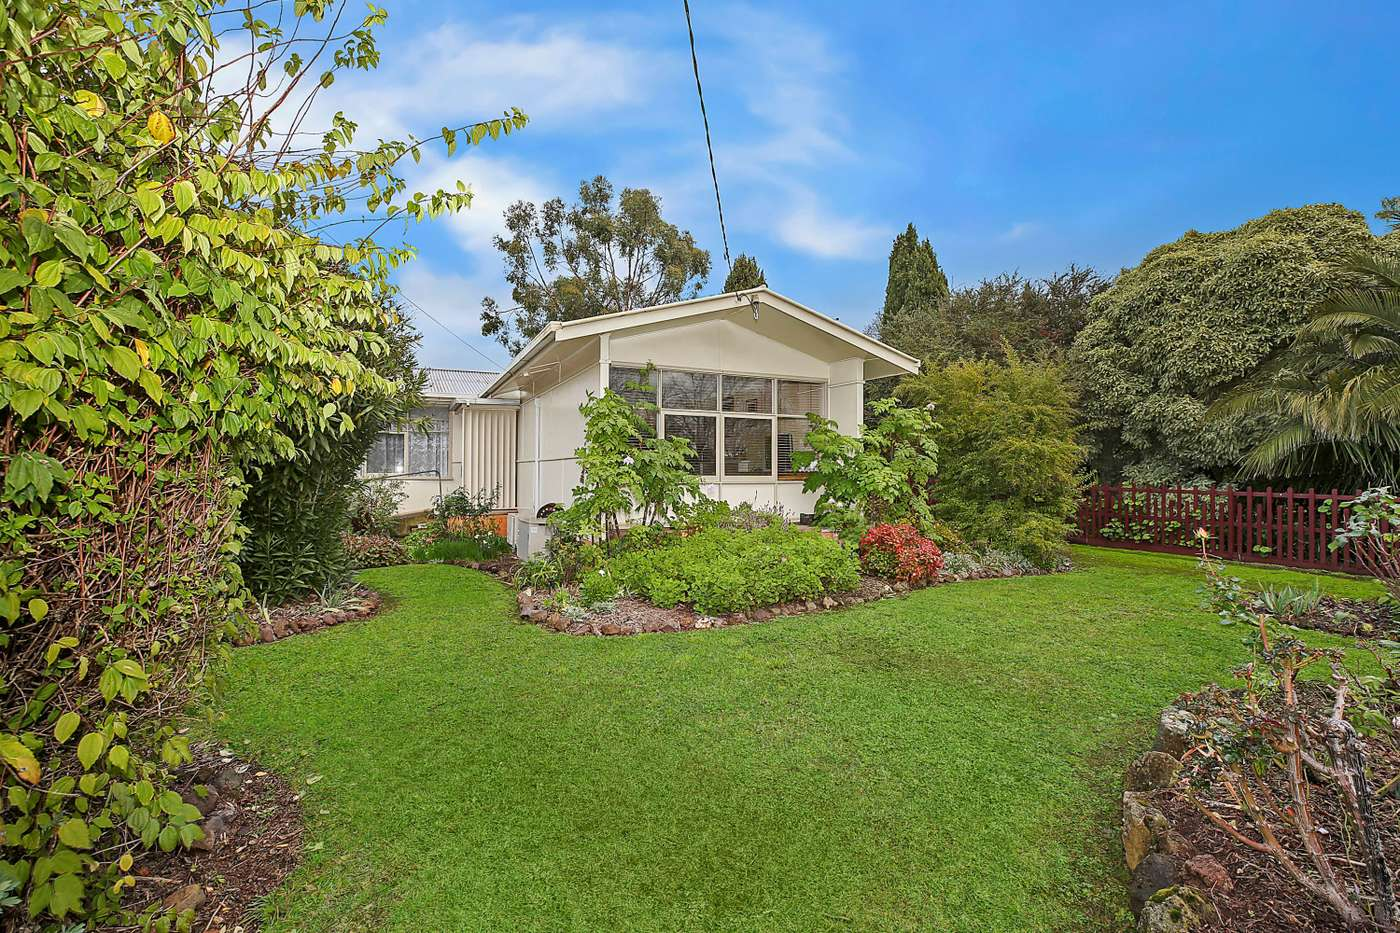 Main view of Homely house listing, 27 Manifold Street, Camperdown, VIC 3260